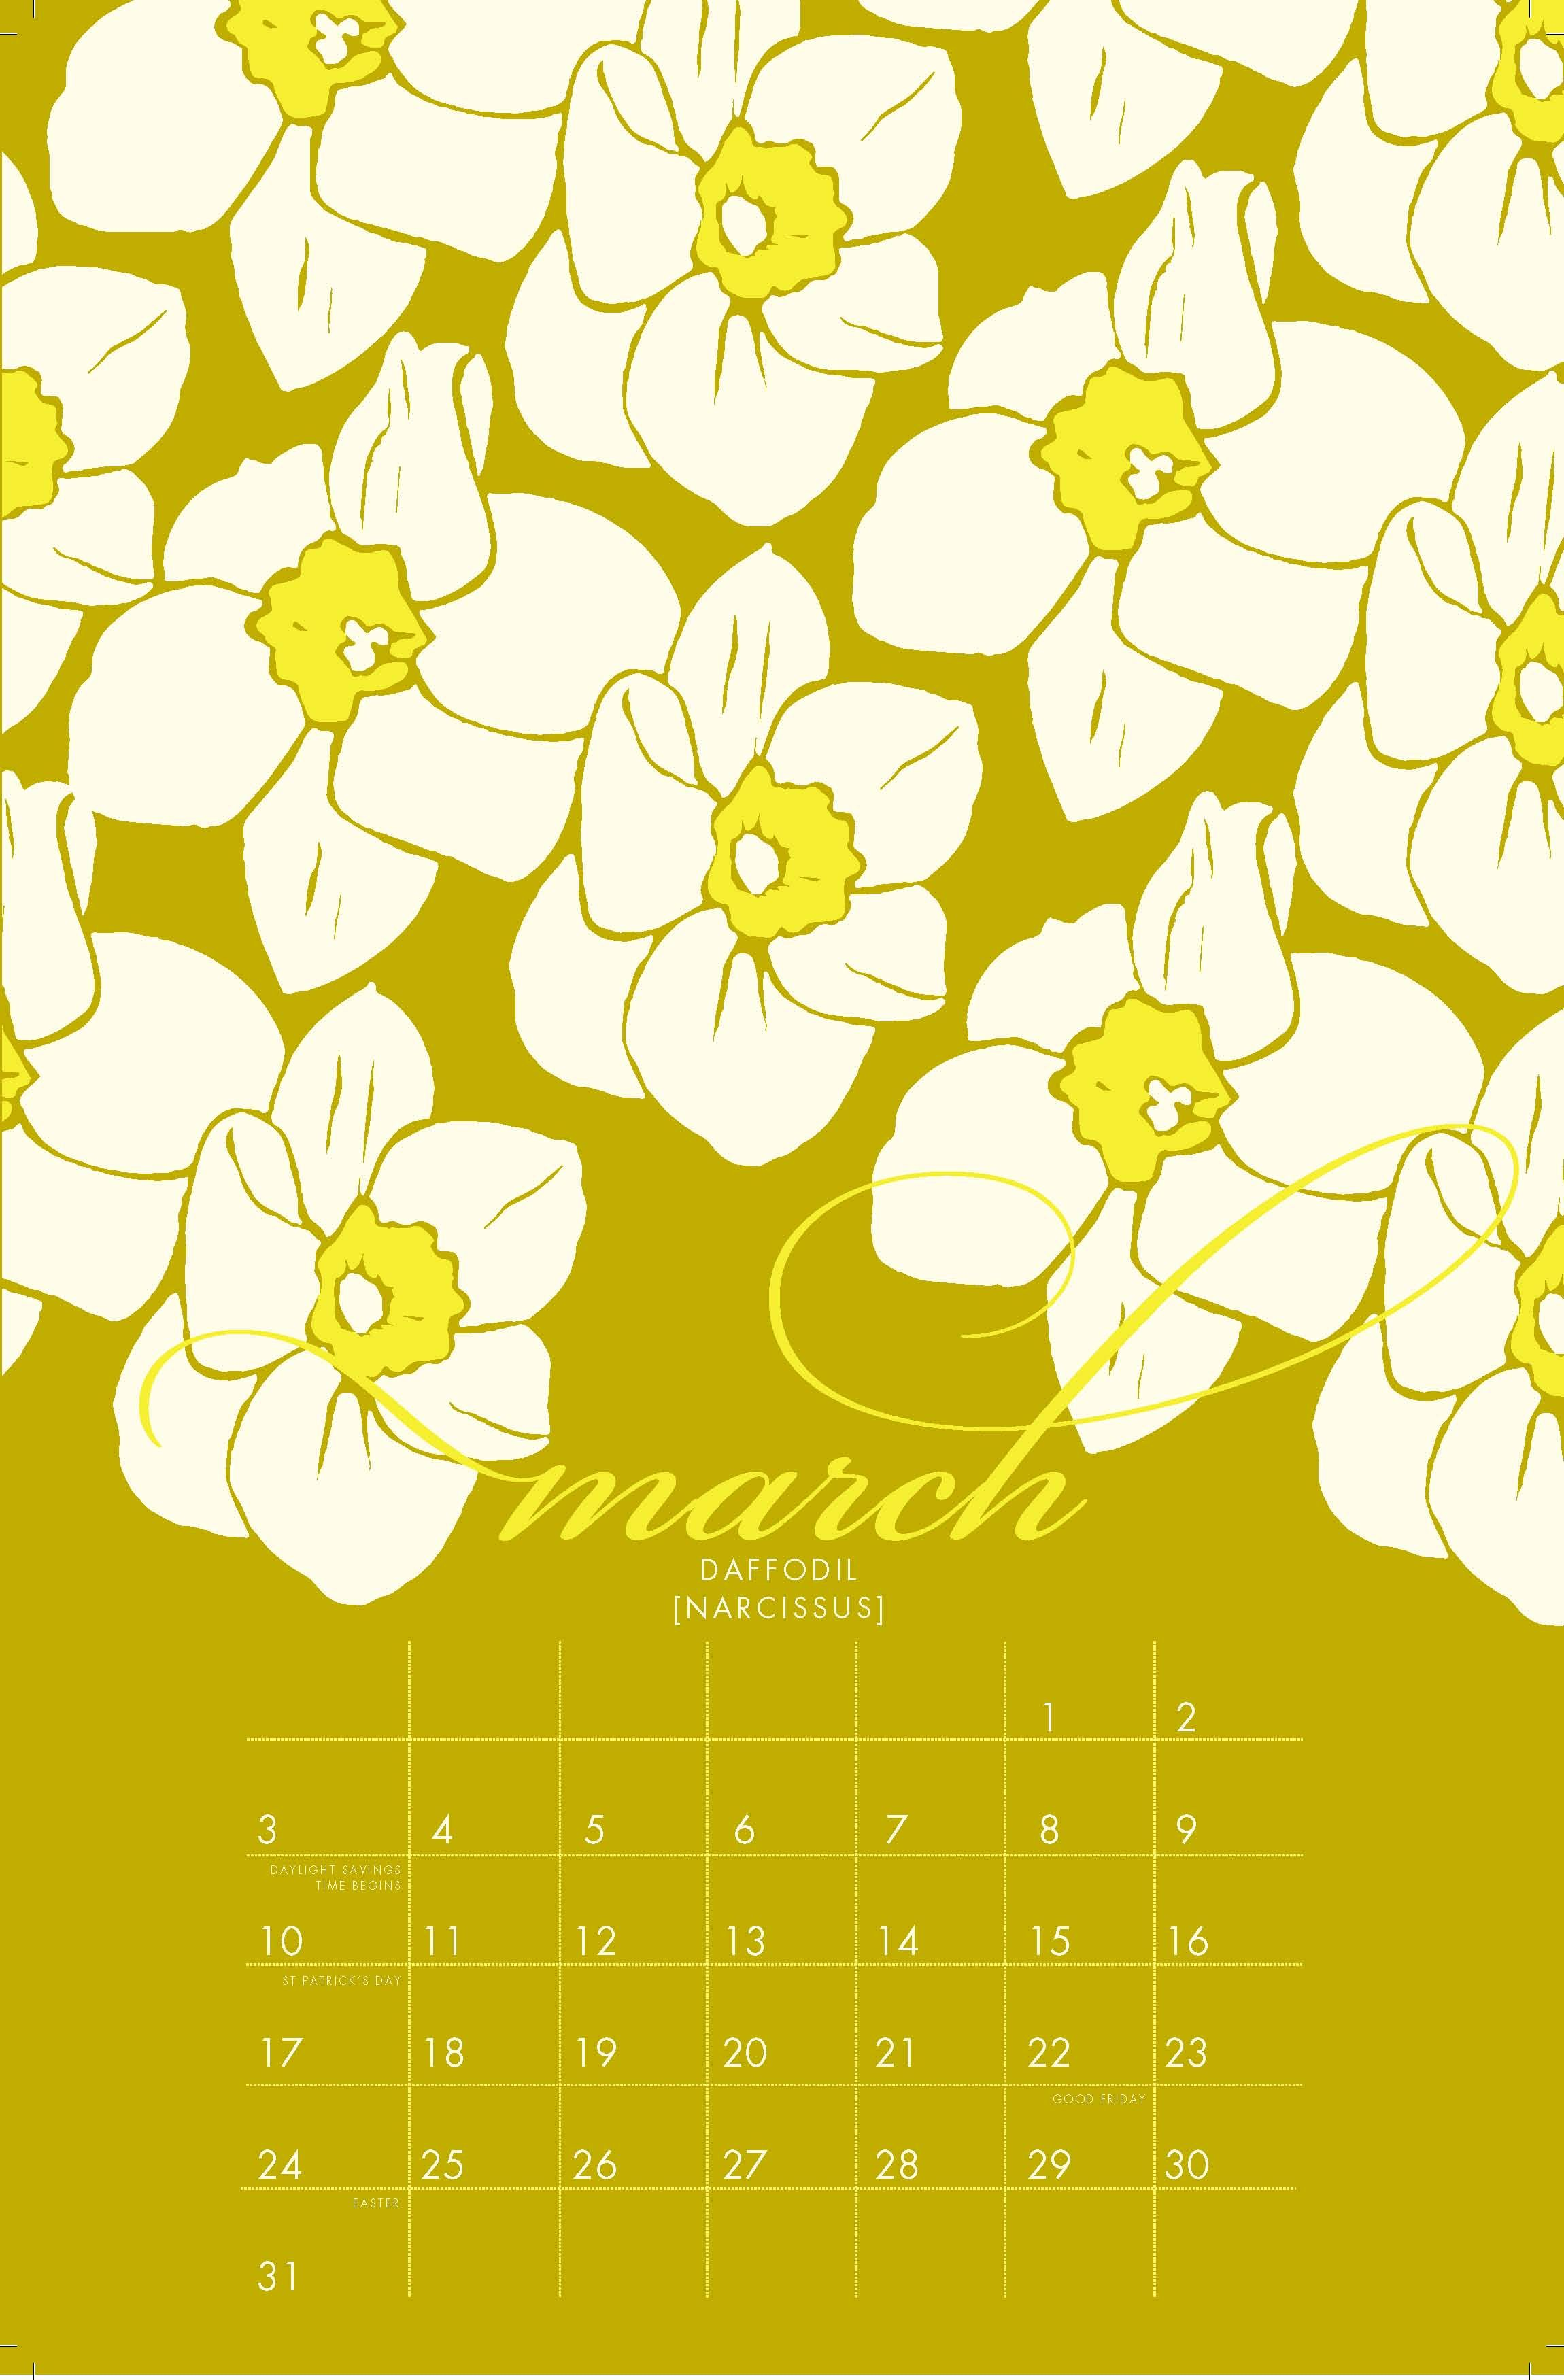 March s birth flower is the daffodil Each month features a unique